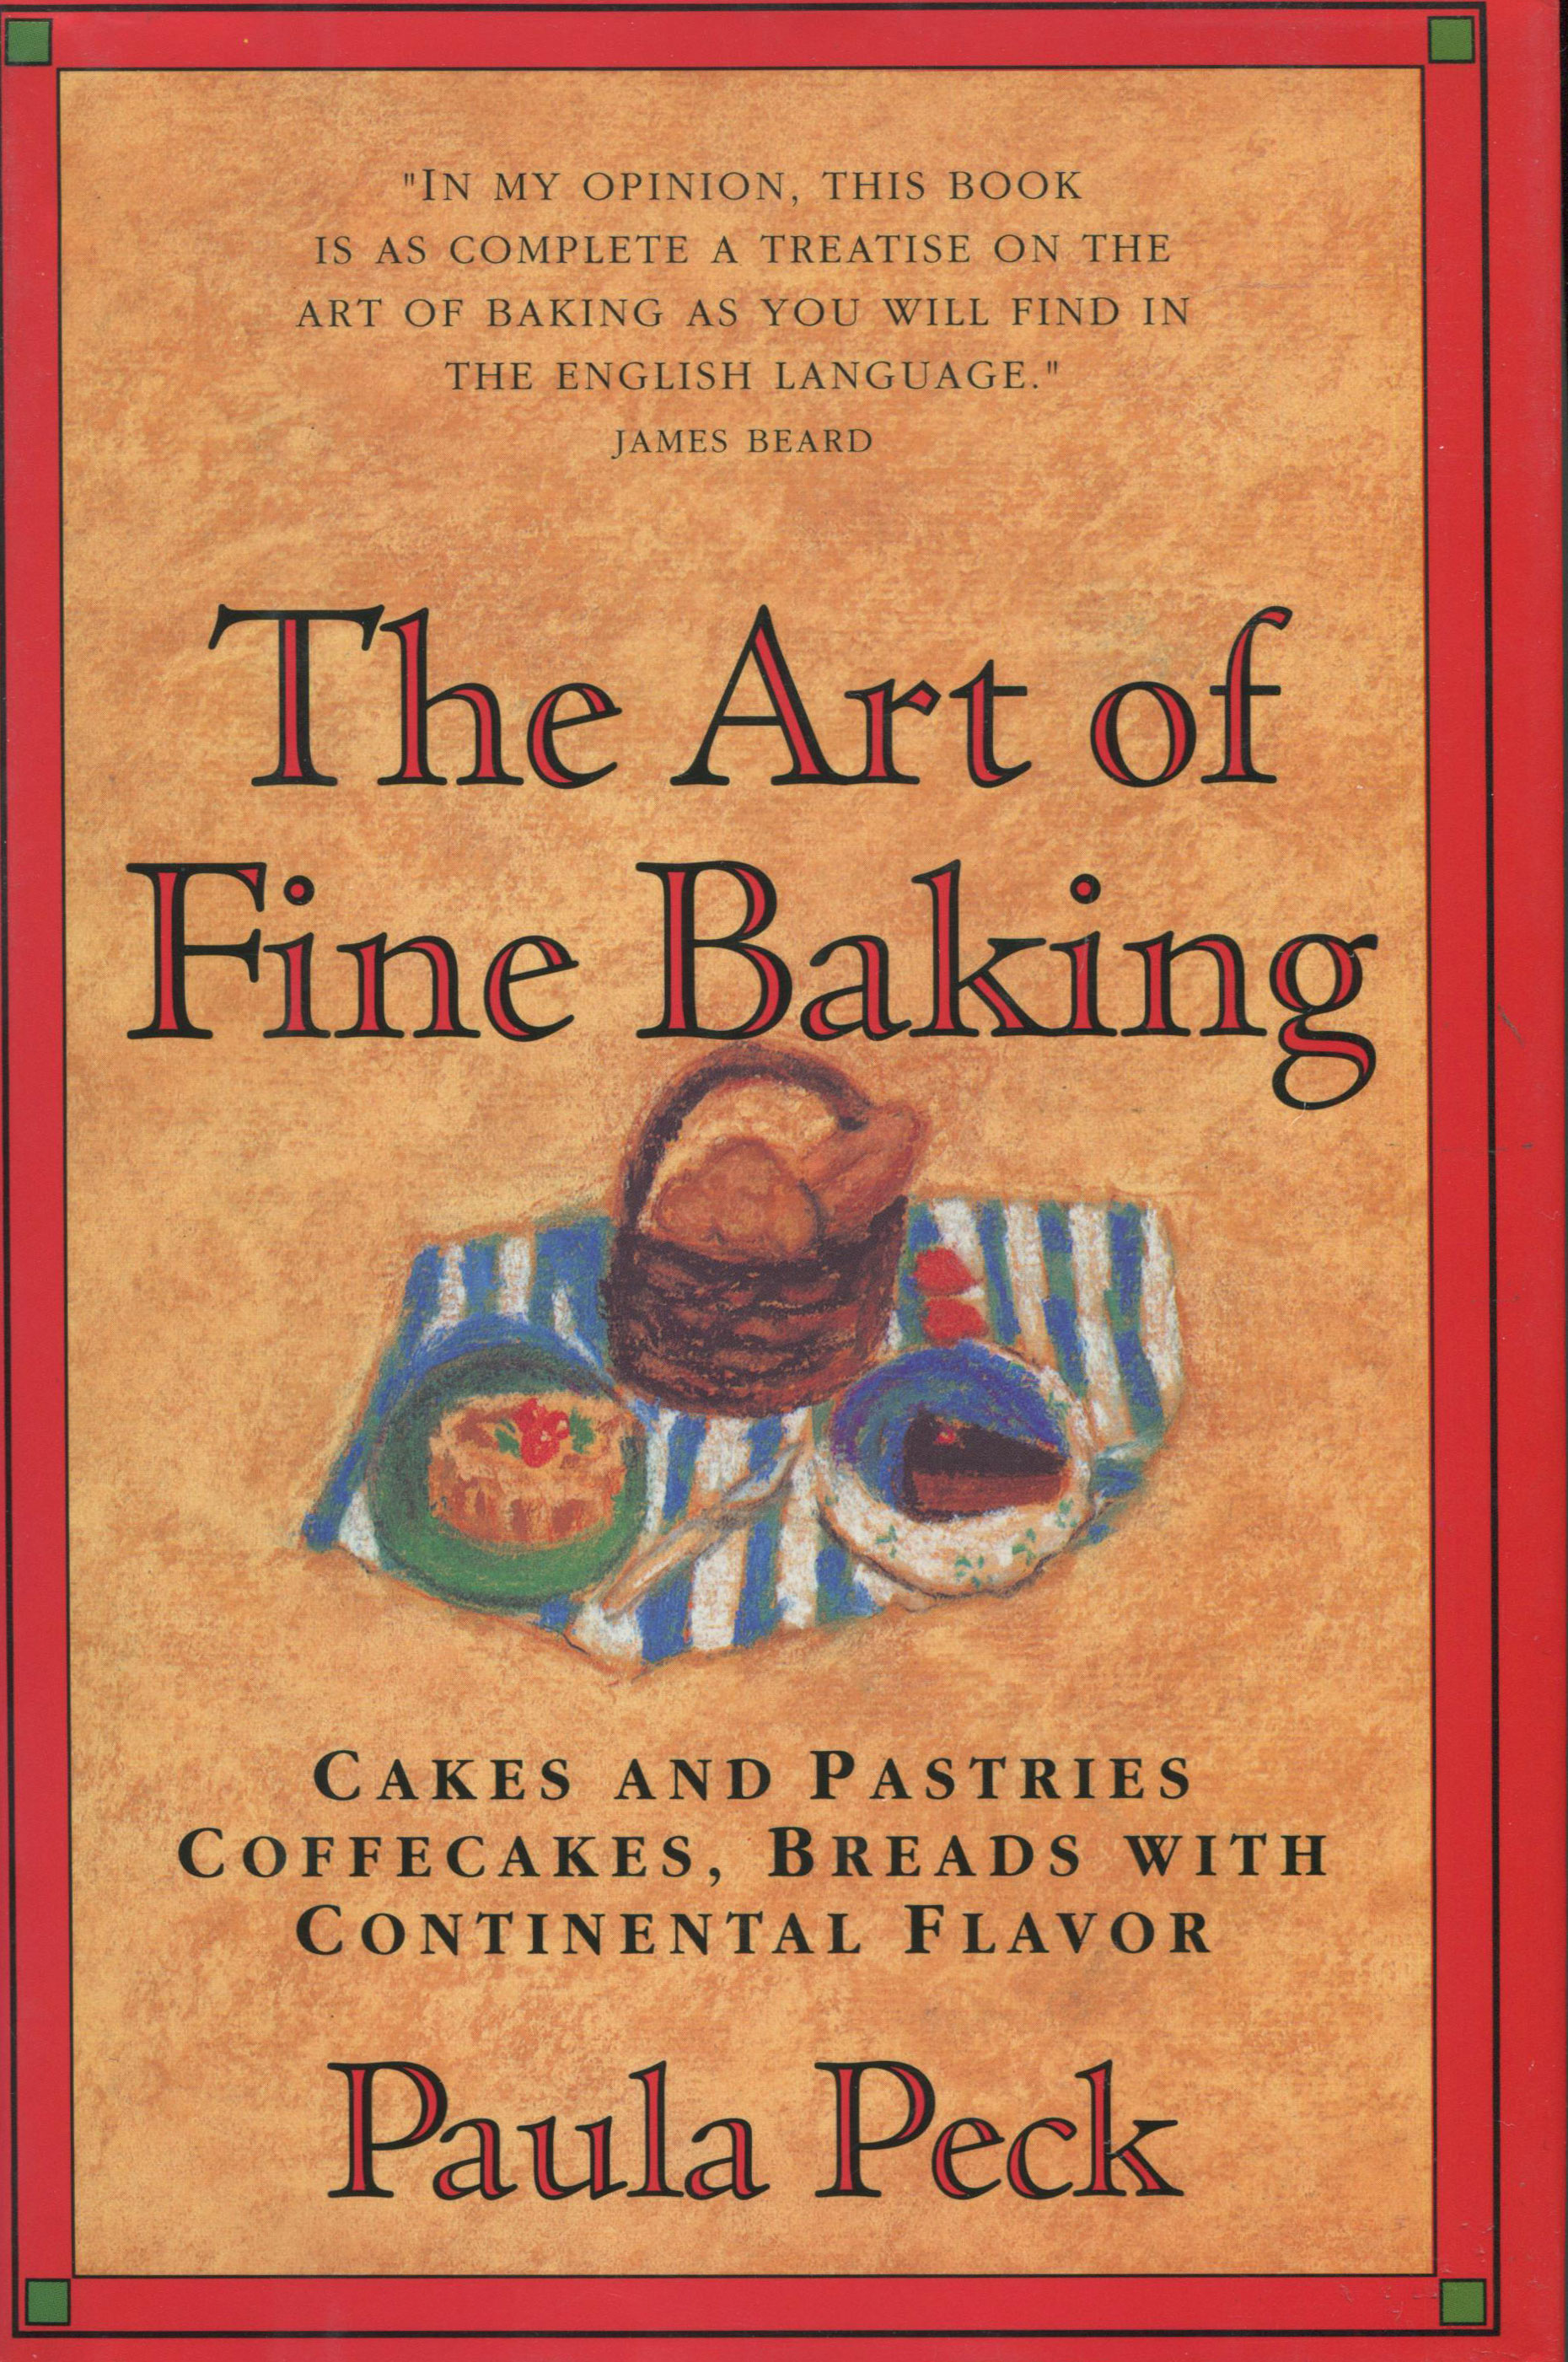 TBT Cookbook Review: The Art of Fine Baking by Paula Peck